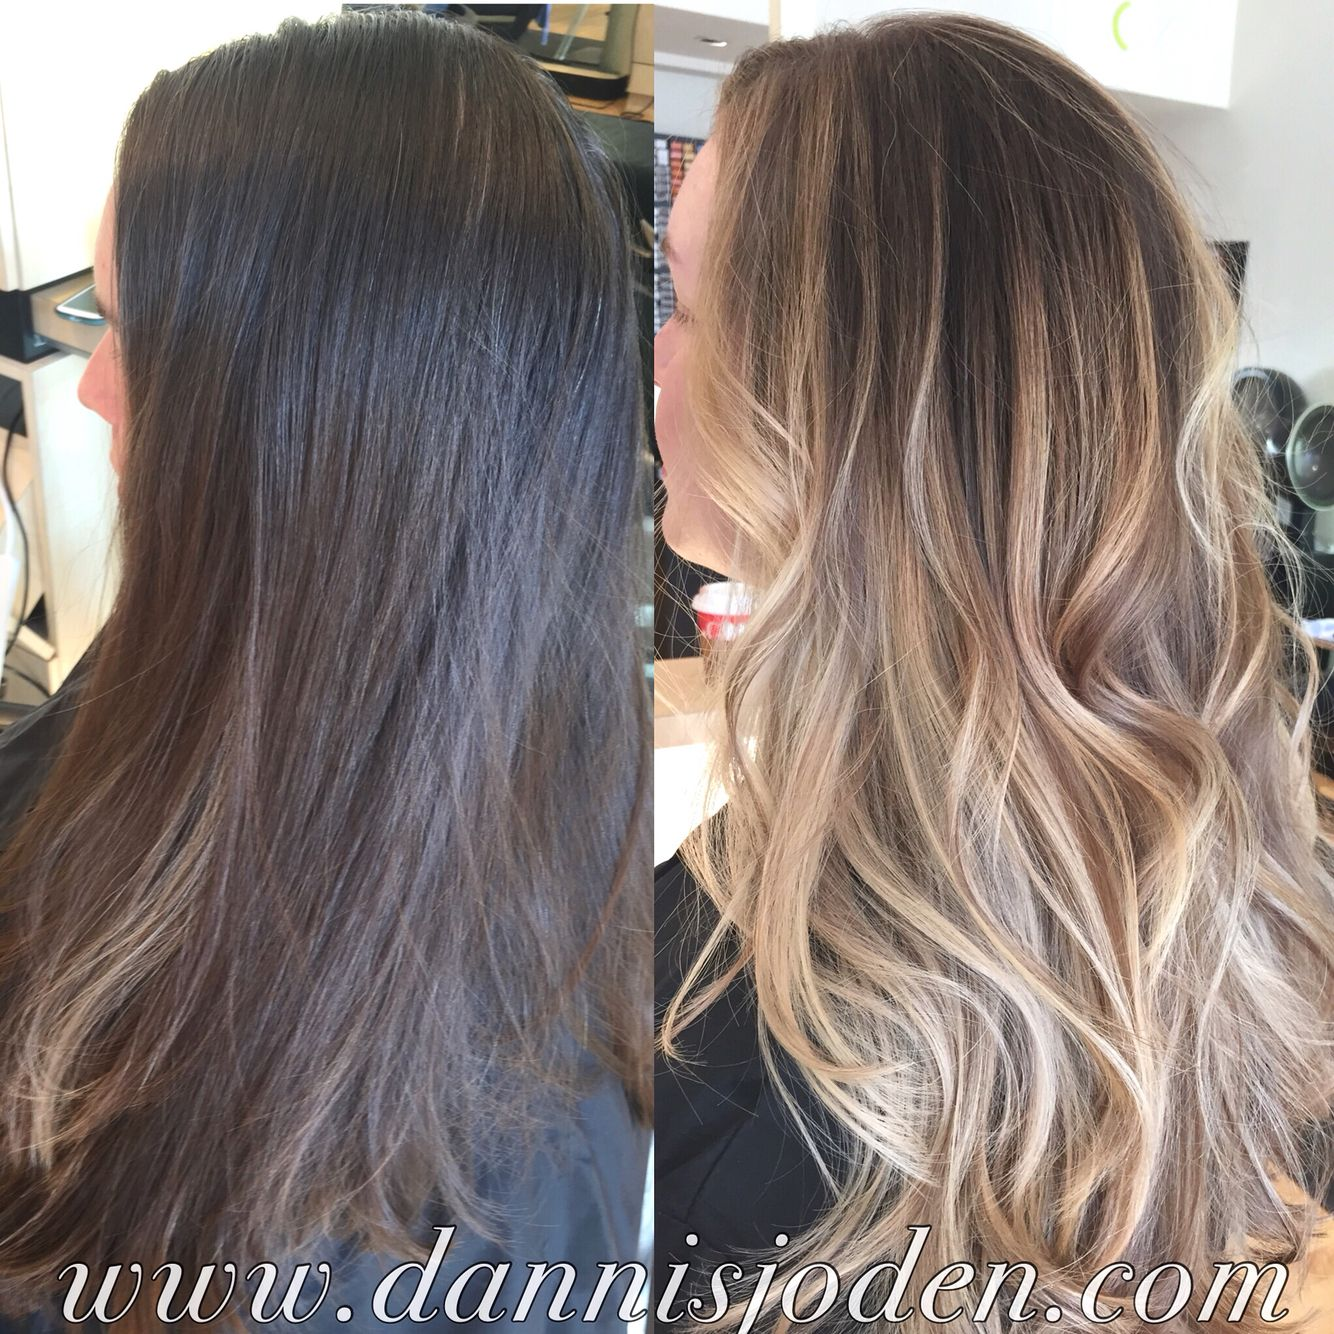 Blonde Balayage Ombr And Long Layered Haircut Styled With Beach